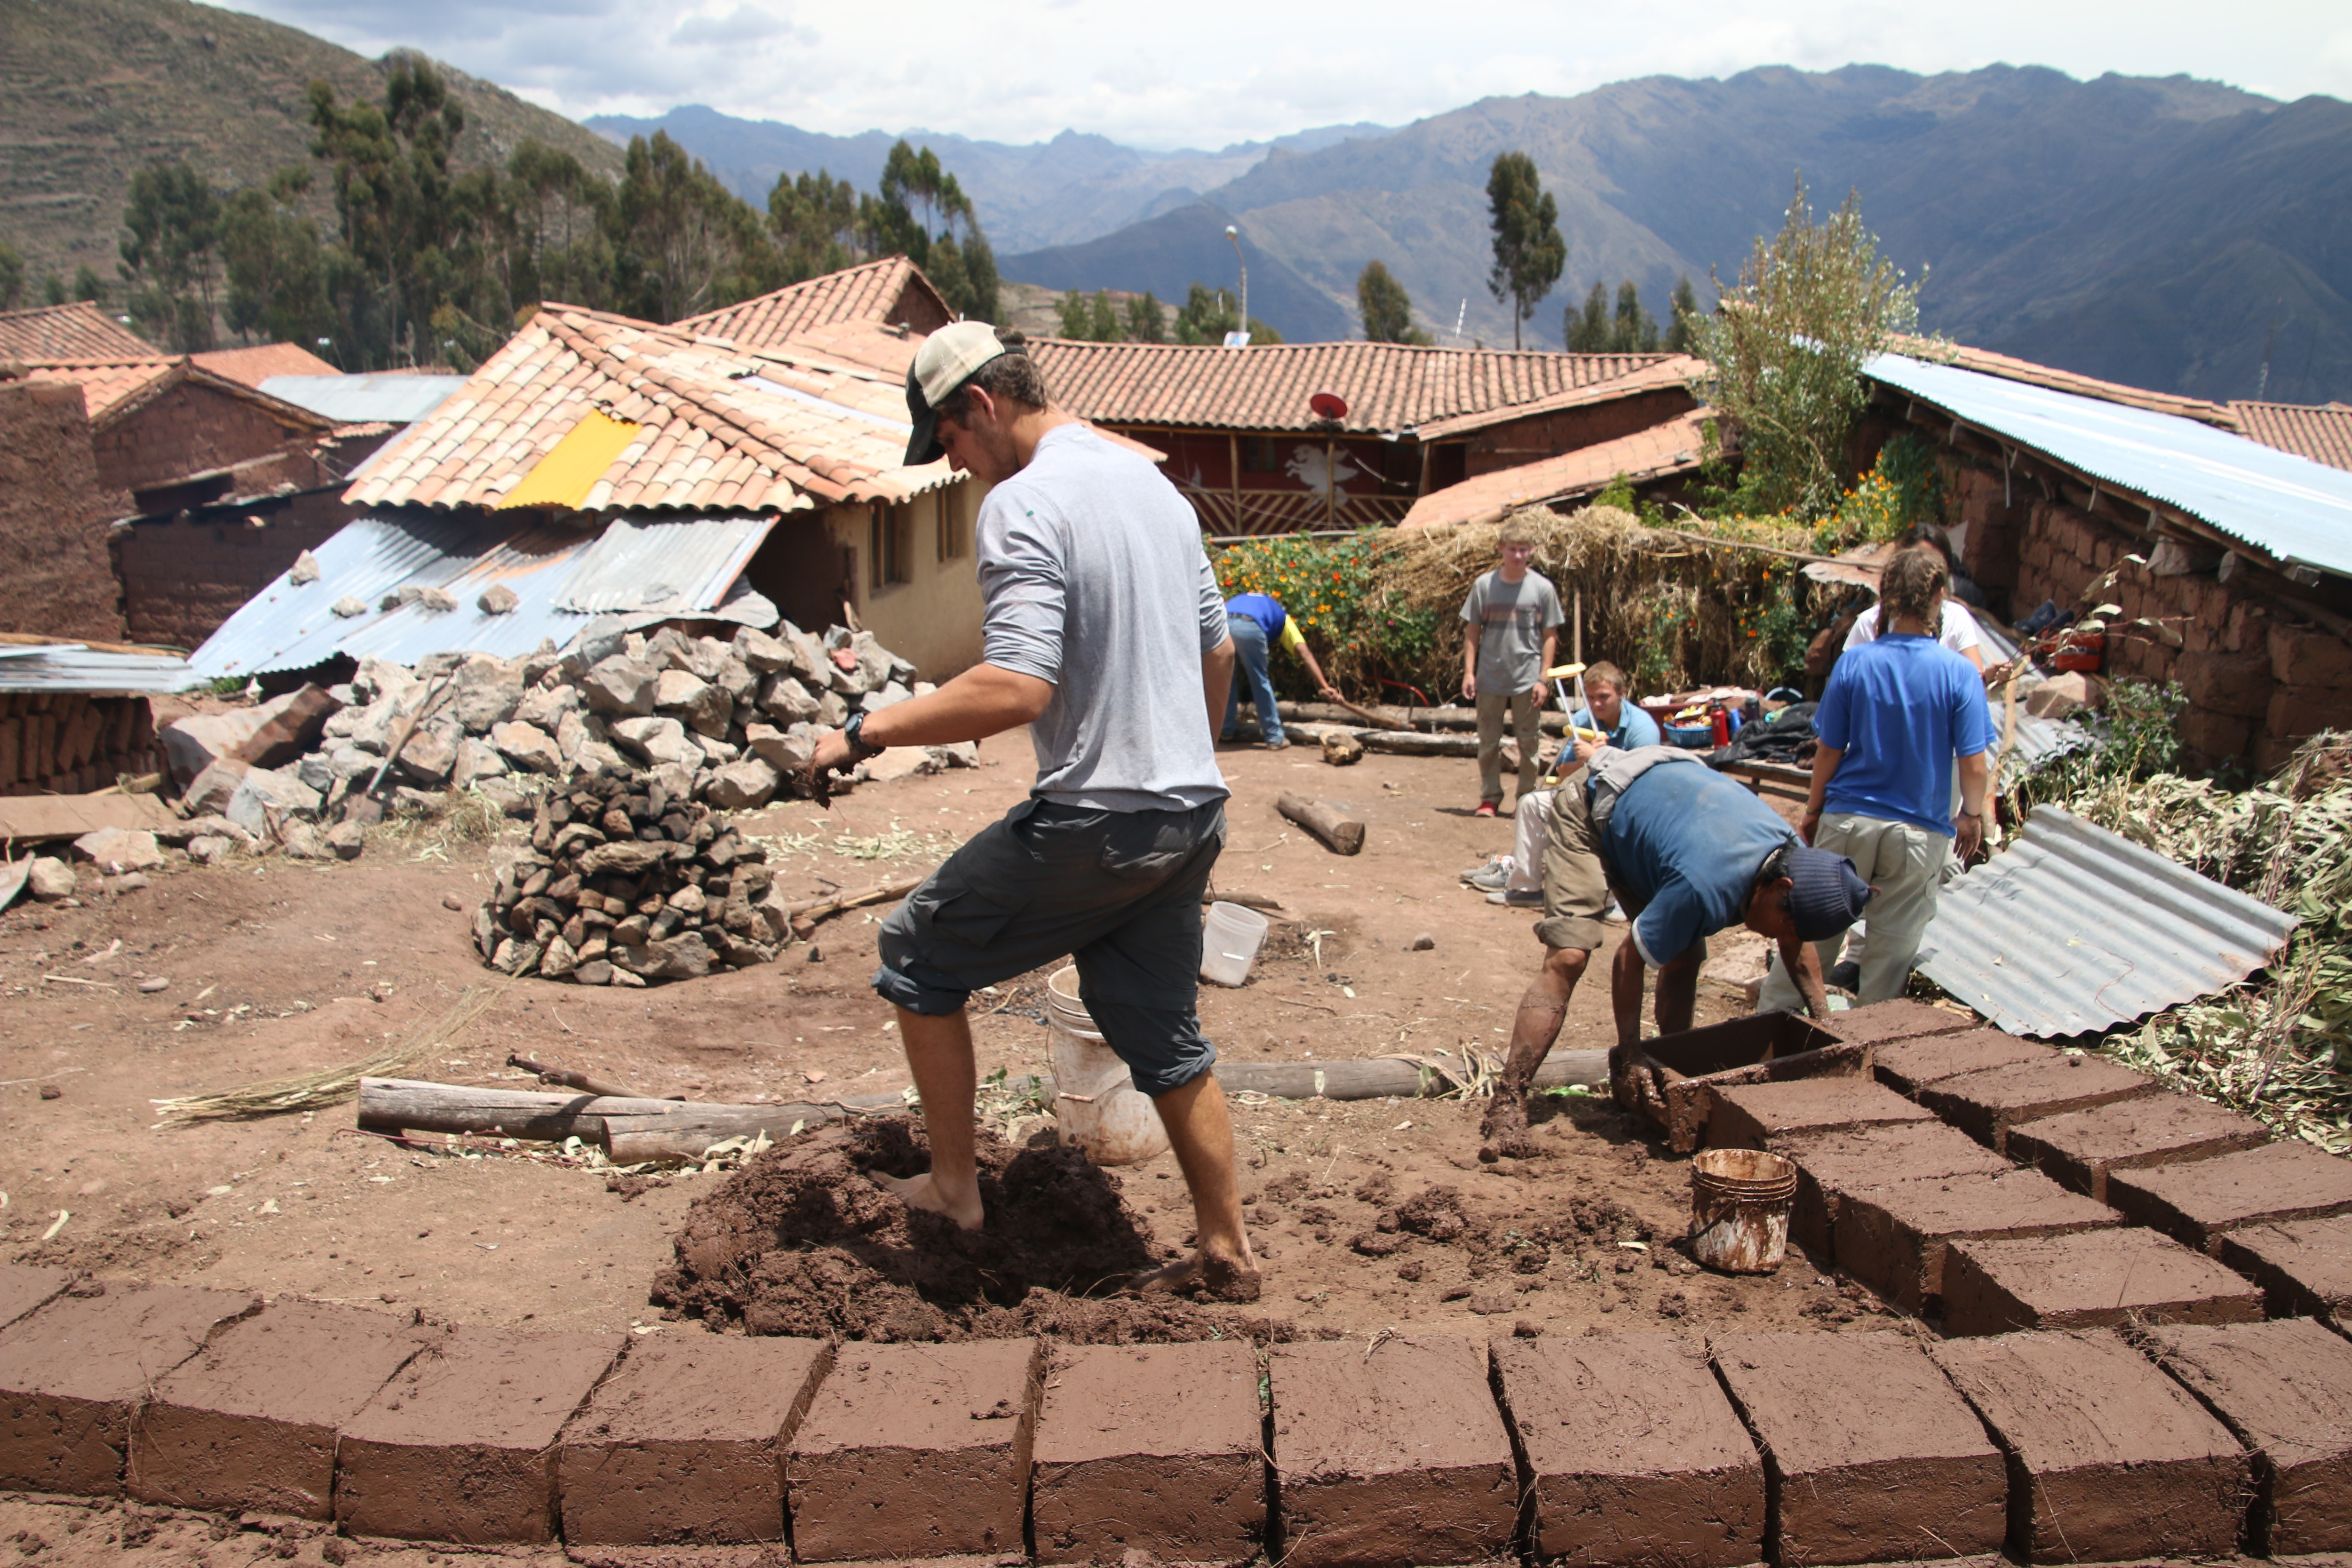 Voluntourists working on construction projects (Courtesy of Gabi Schiller/Go Overseas)